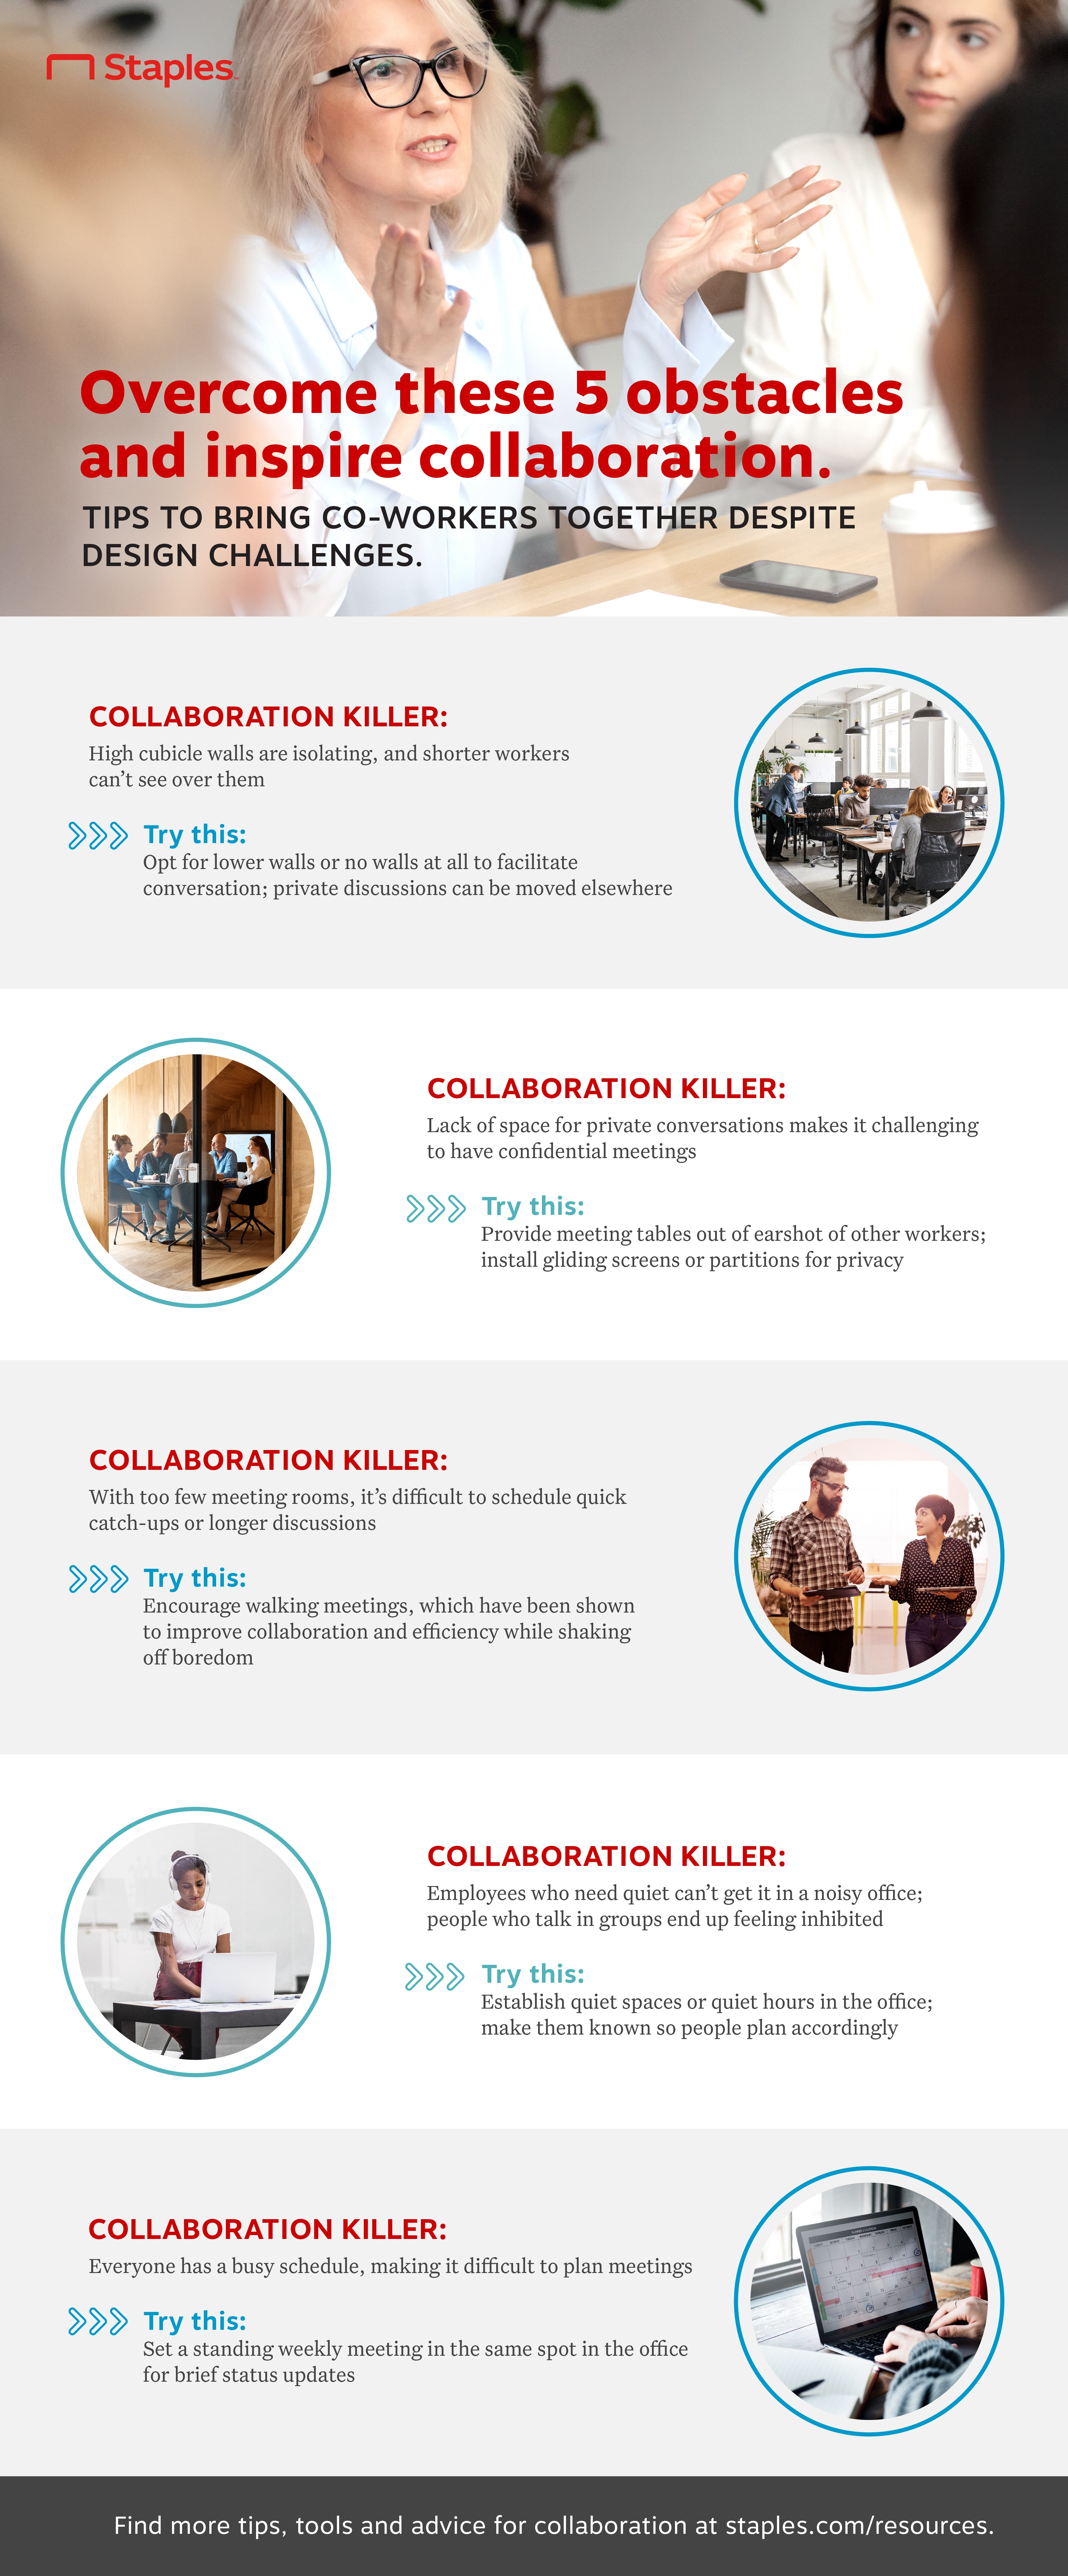 Overcome Collaboration Killers in Your Workspace